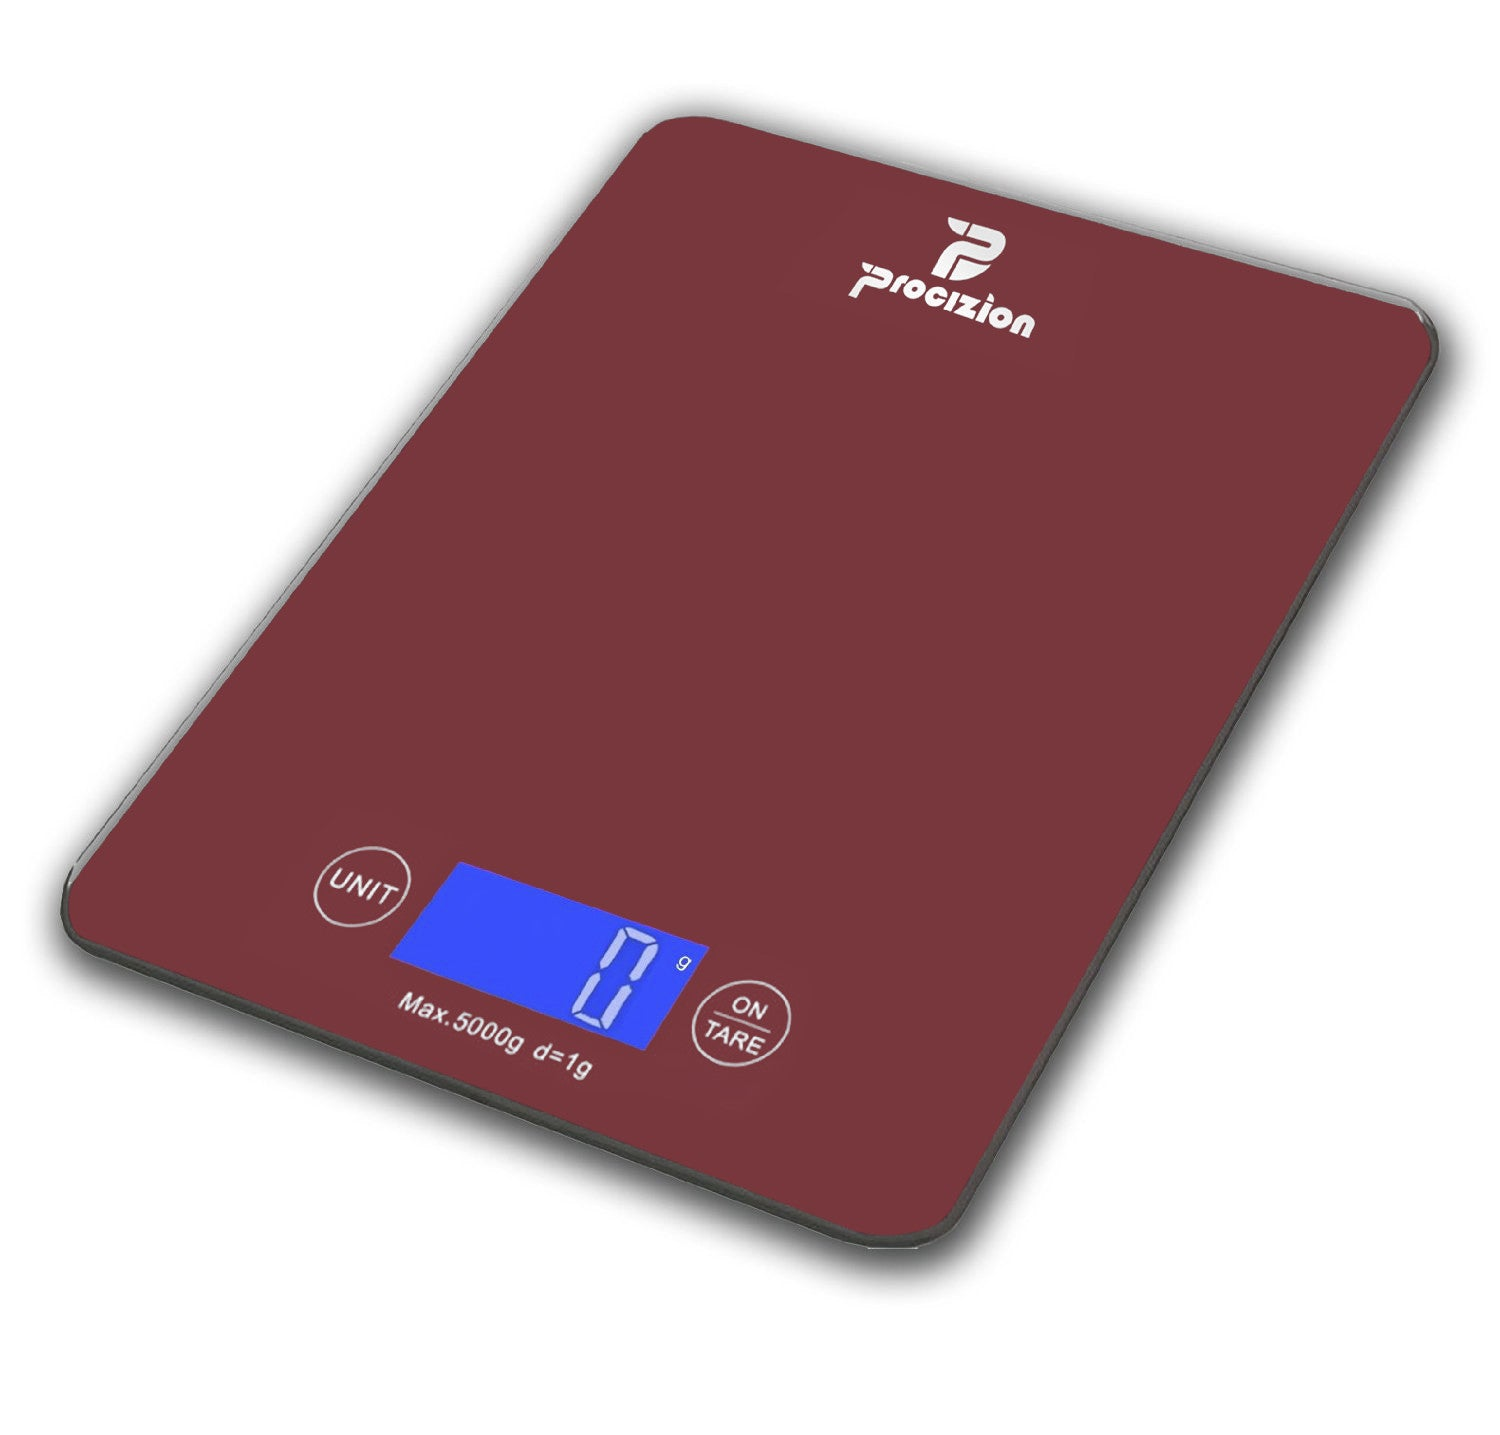 Why you need a digital kitchen scale